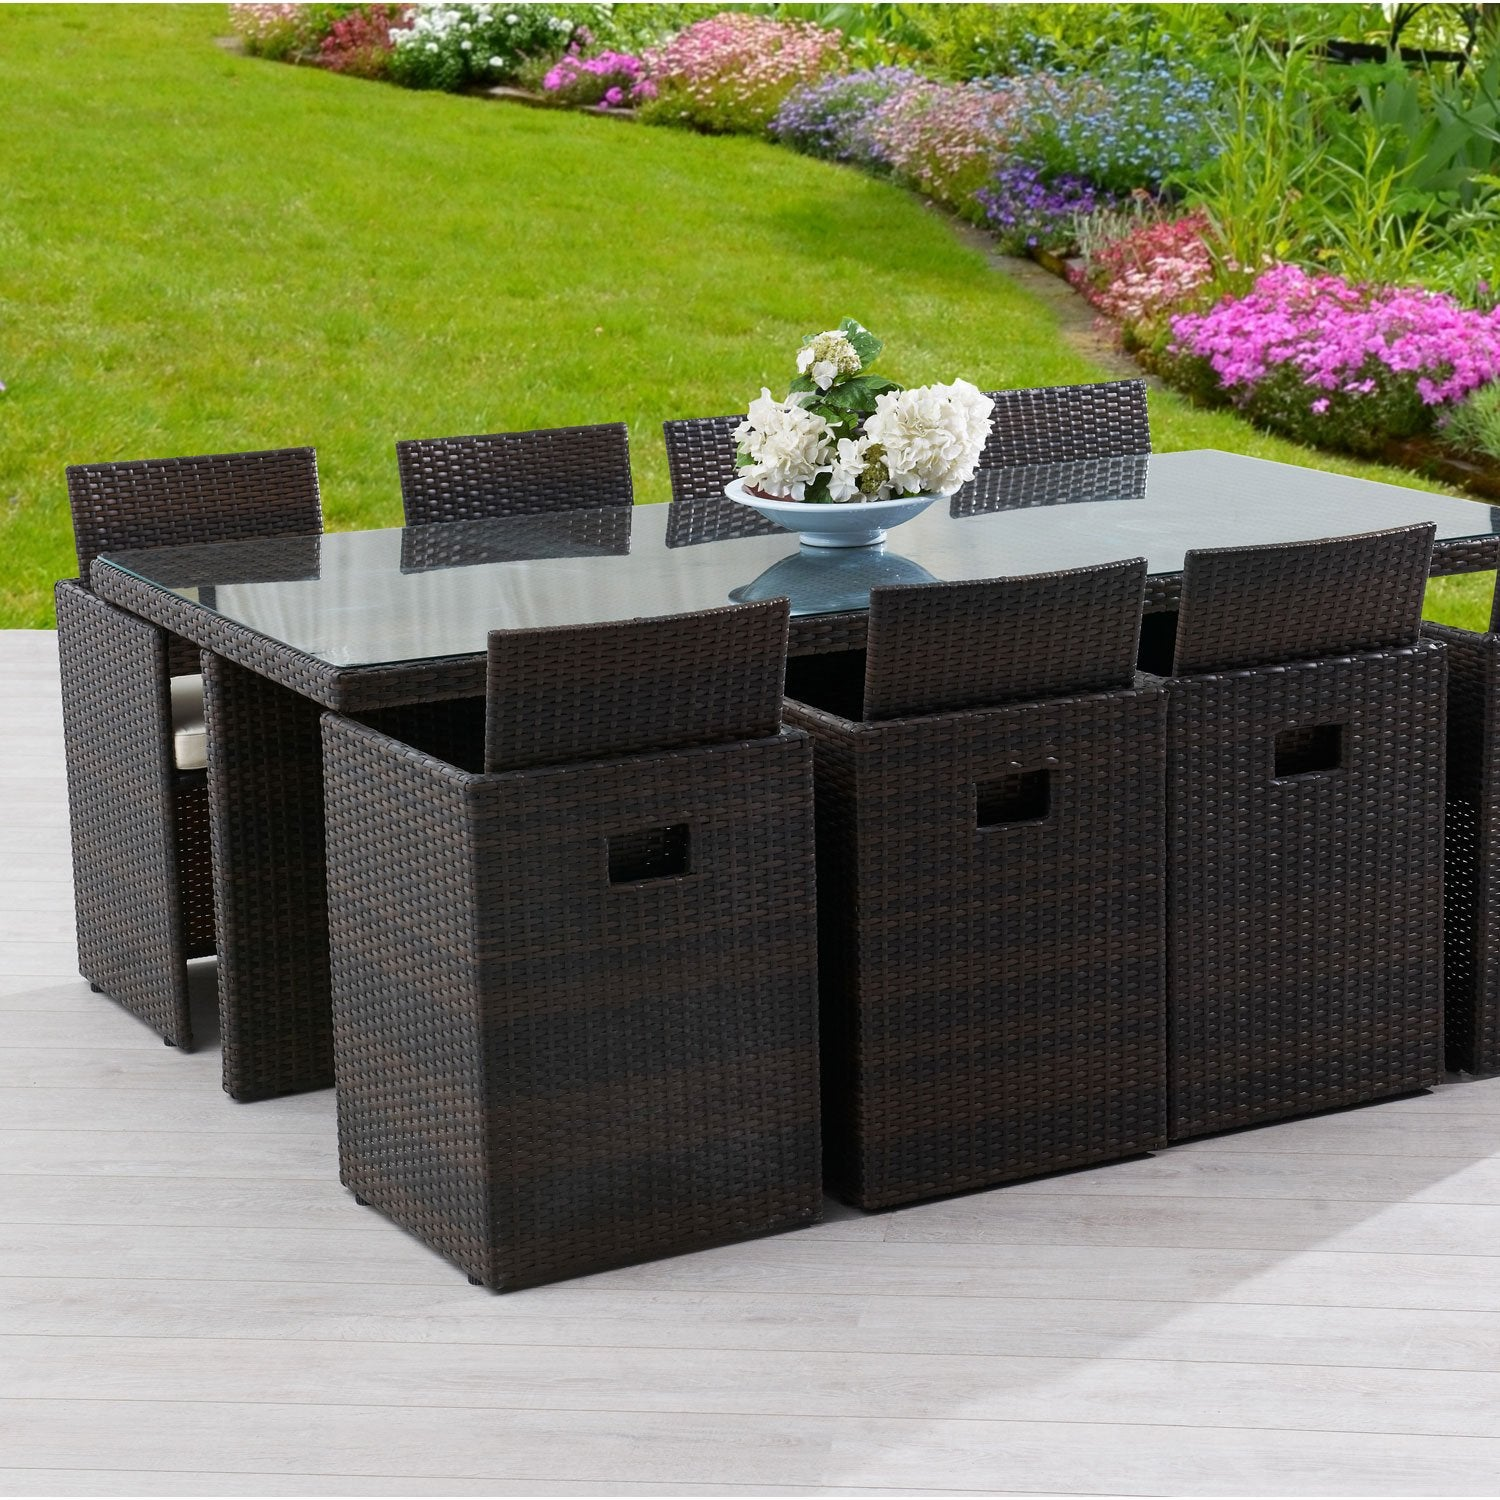 Salon de jardin encastrable r sine tress e marron 1 table for Salon de jardin tresse gris anthracite